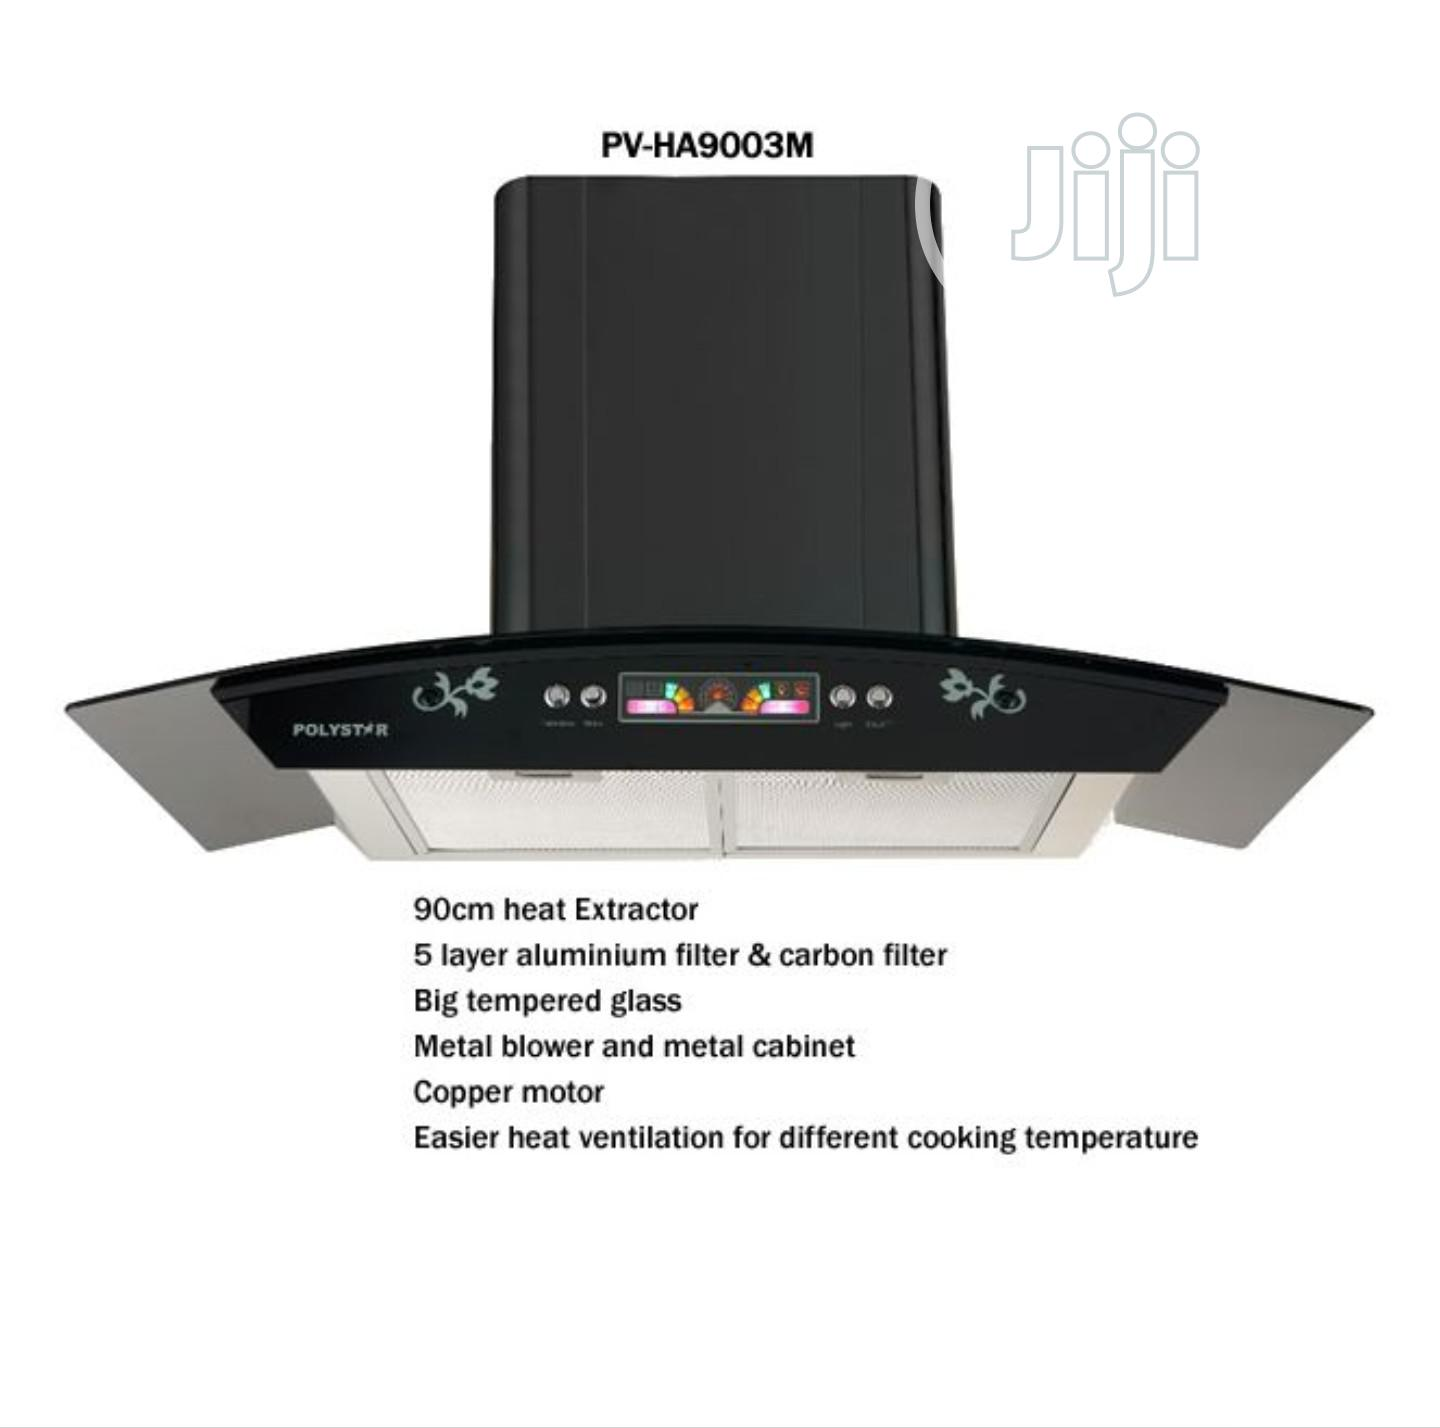 Polystar 90cm Digital Range Hood Tempered Glass PV-HA9003M | Kitchen Appliances for sale in Ojo, Lagos State, Nigeria